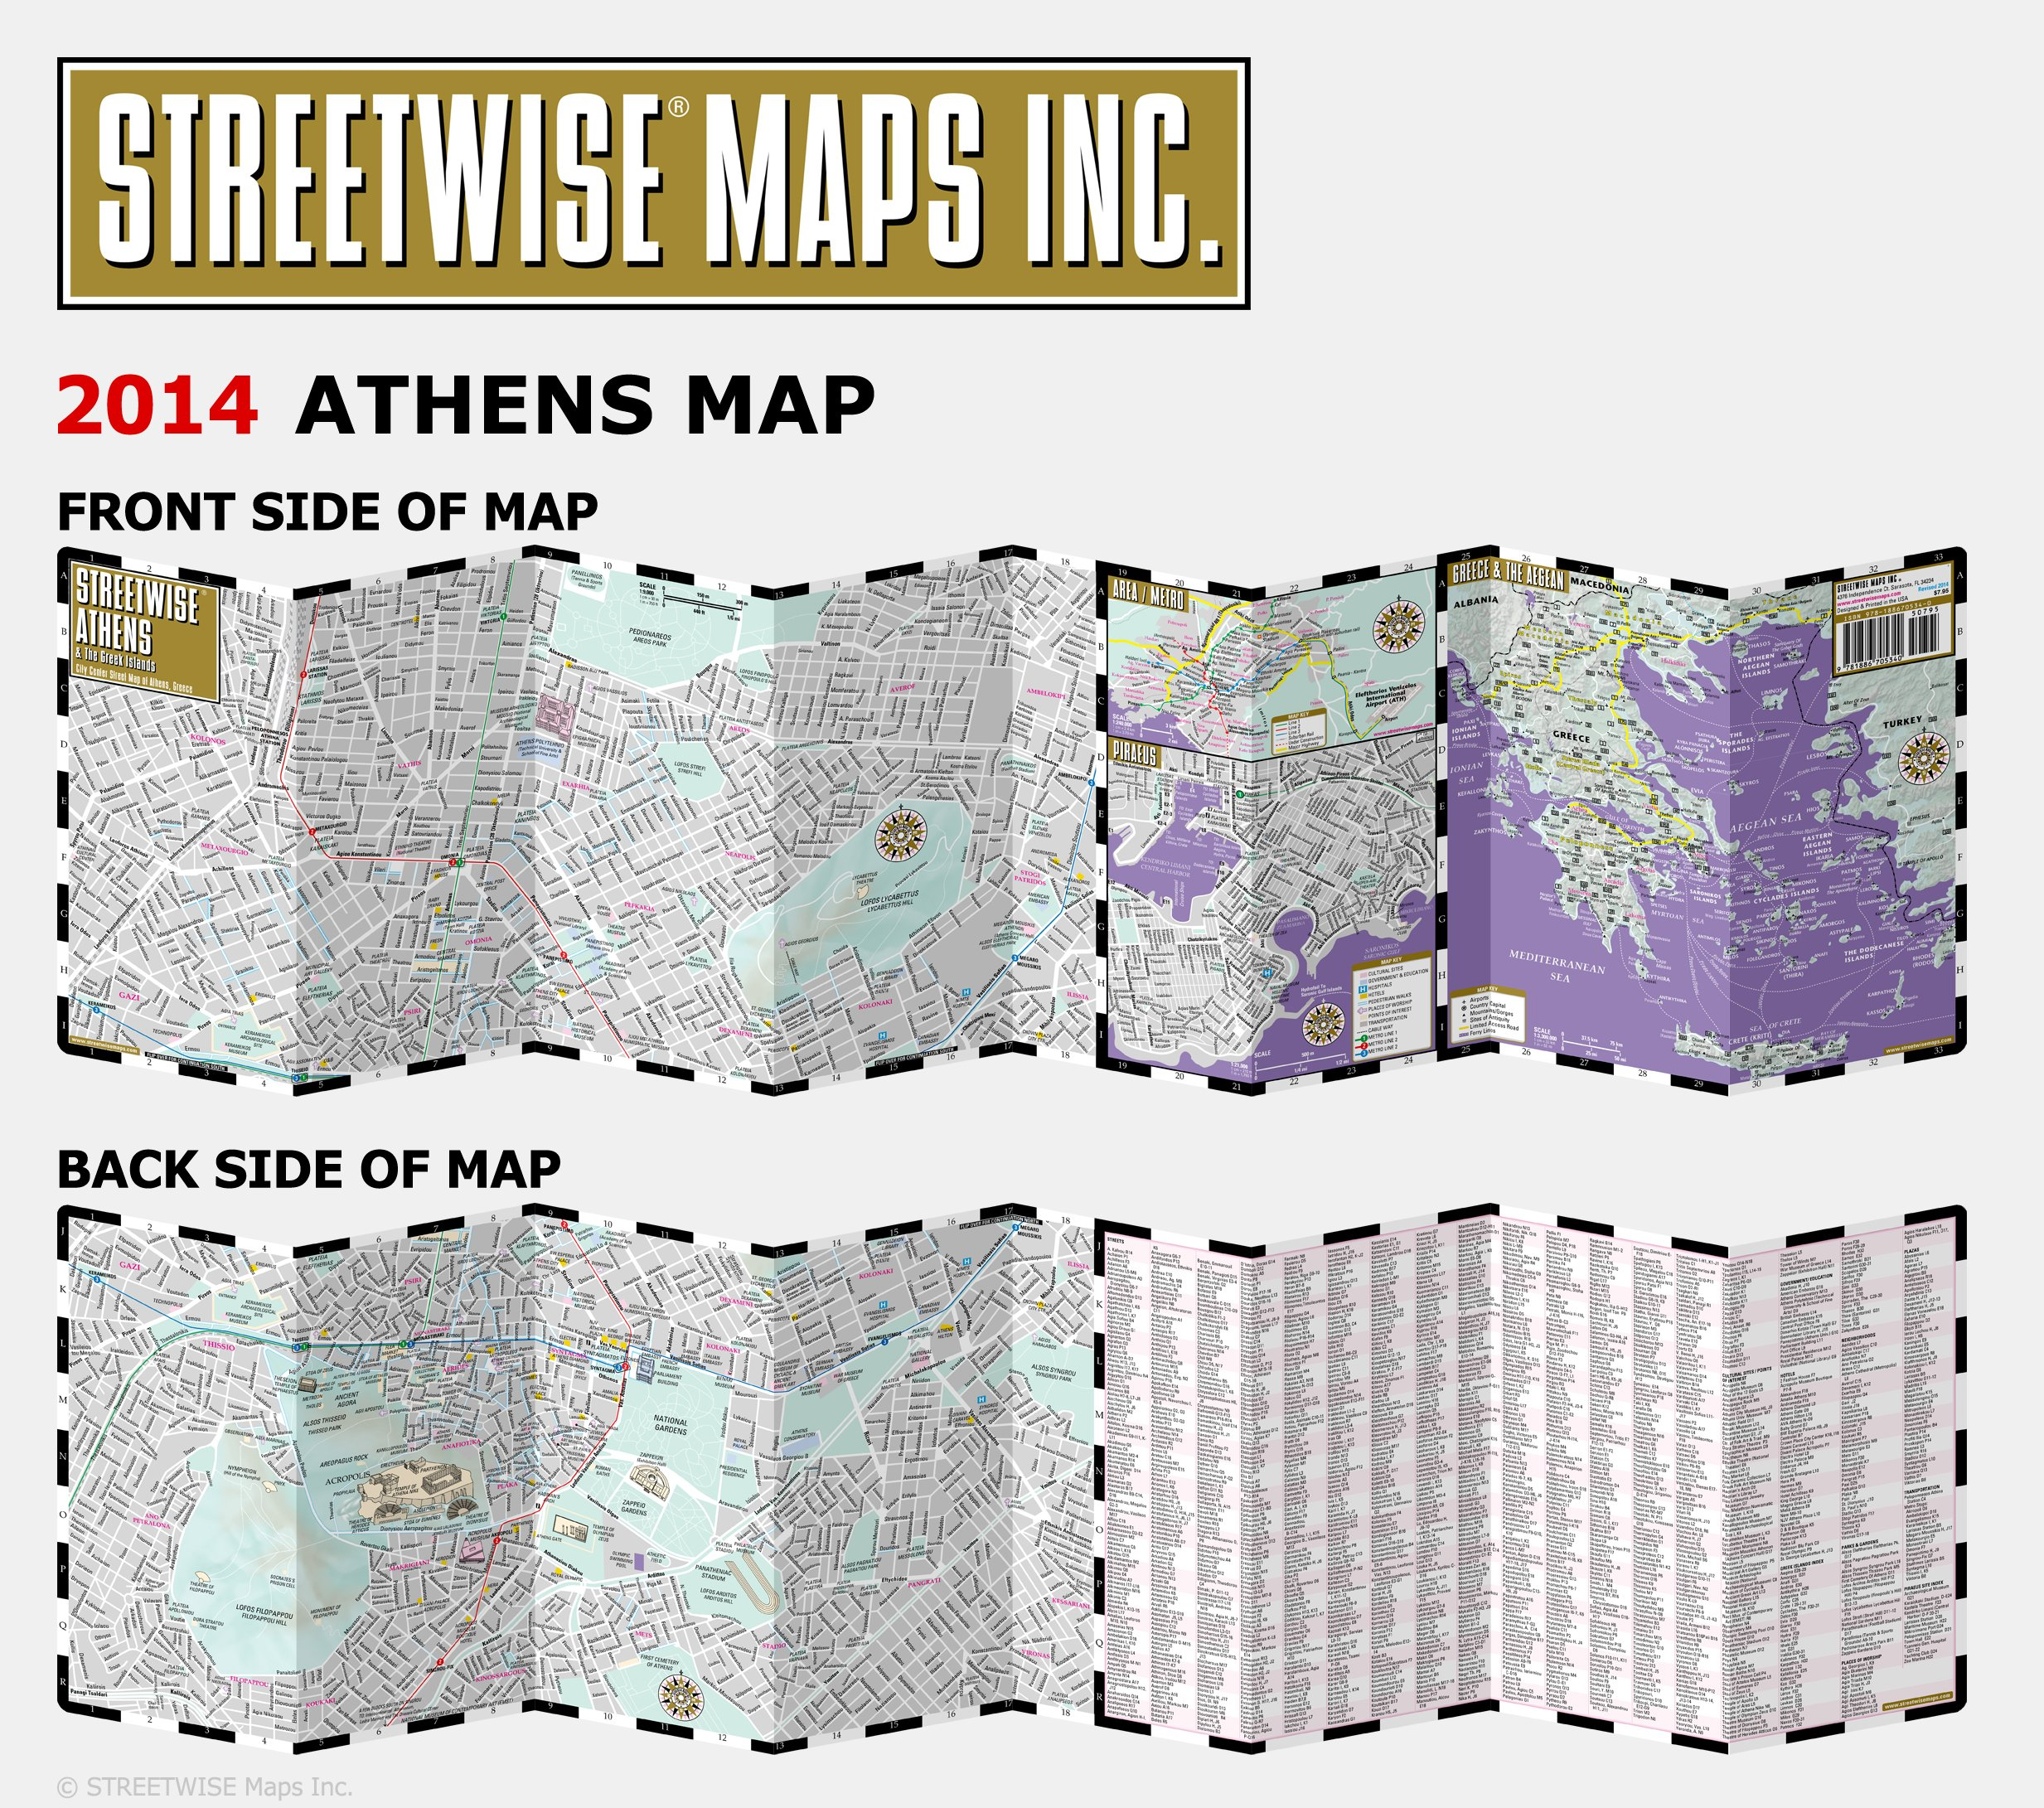 streetwise athens map laminated city center street map of athens greece folding pocket size travel map with metro map